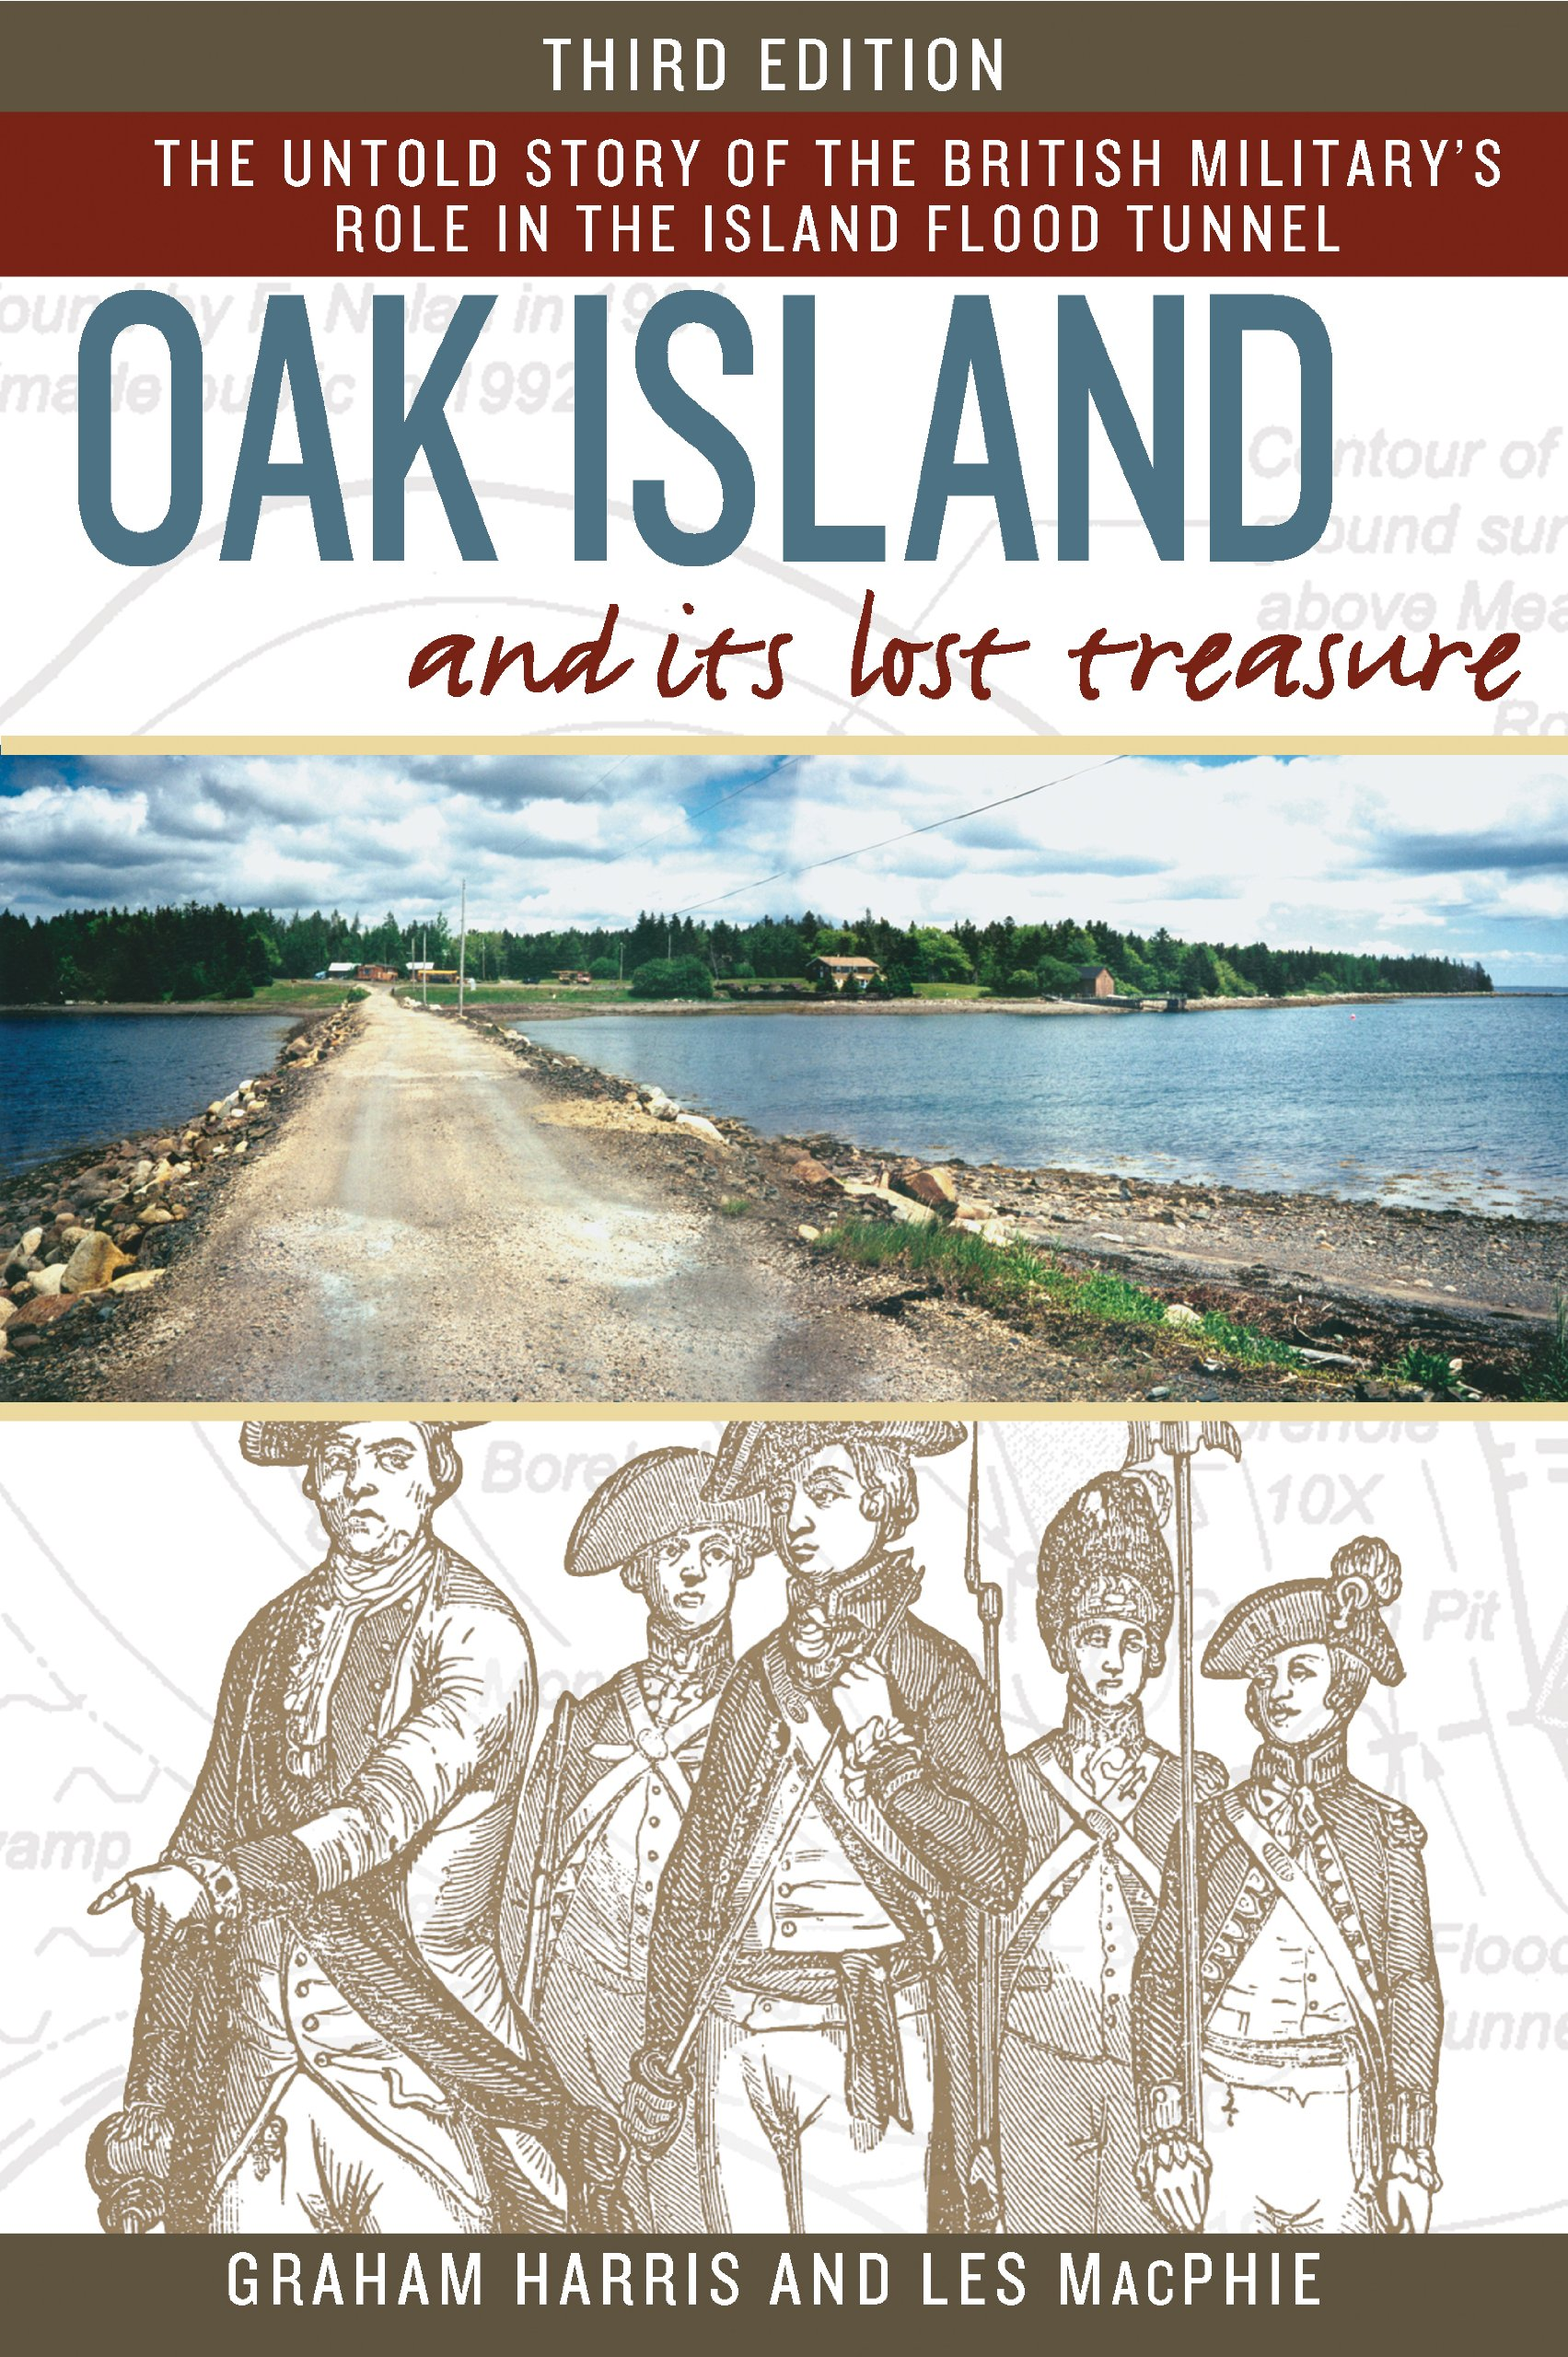 Oak Island and its Lost Treasure: The Untold Story of the British Military's Role in the Island Flood Tunnel